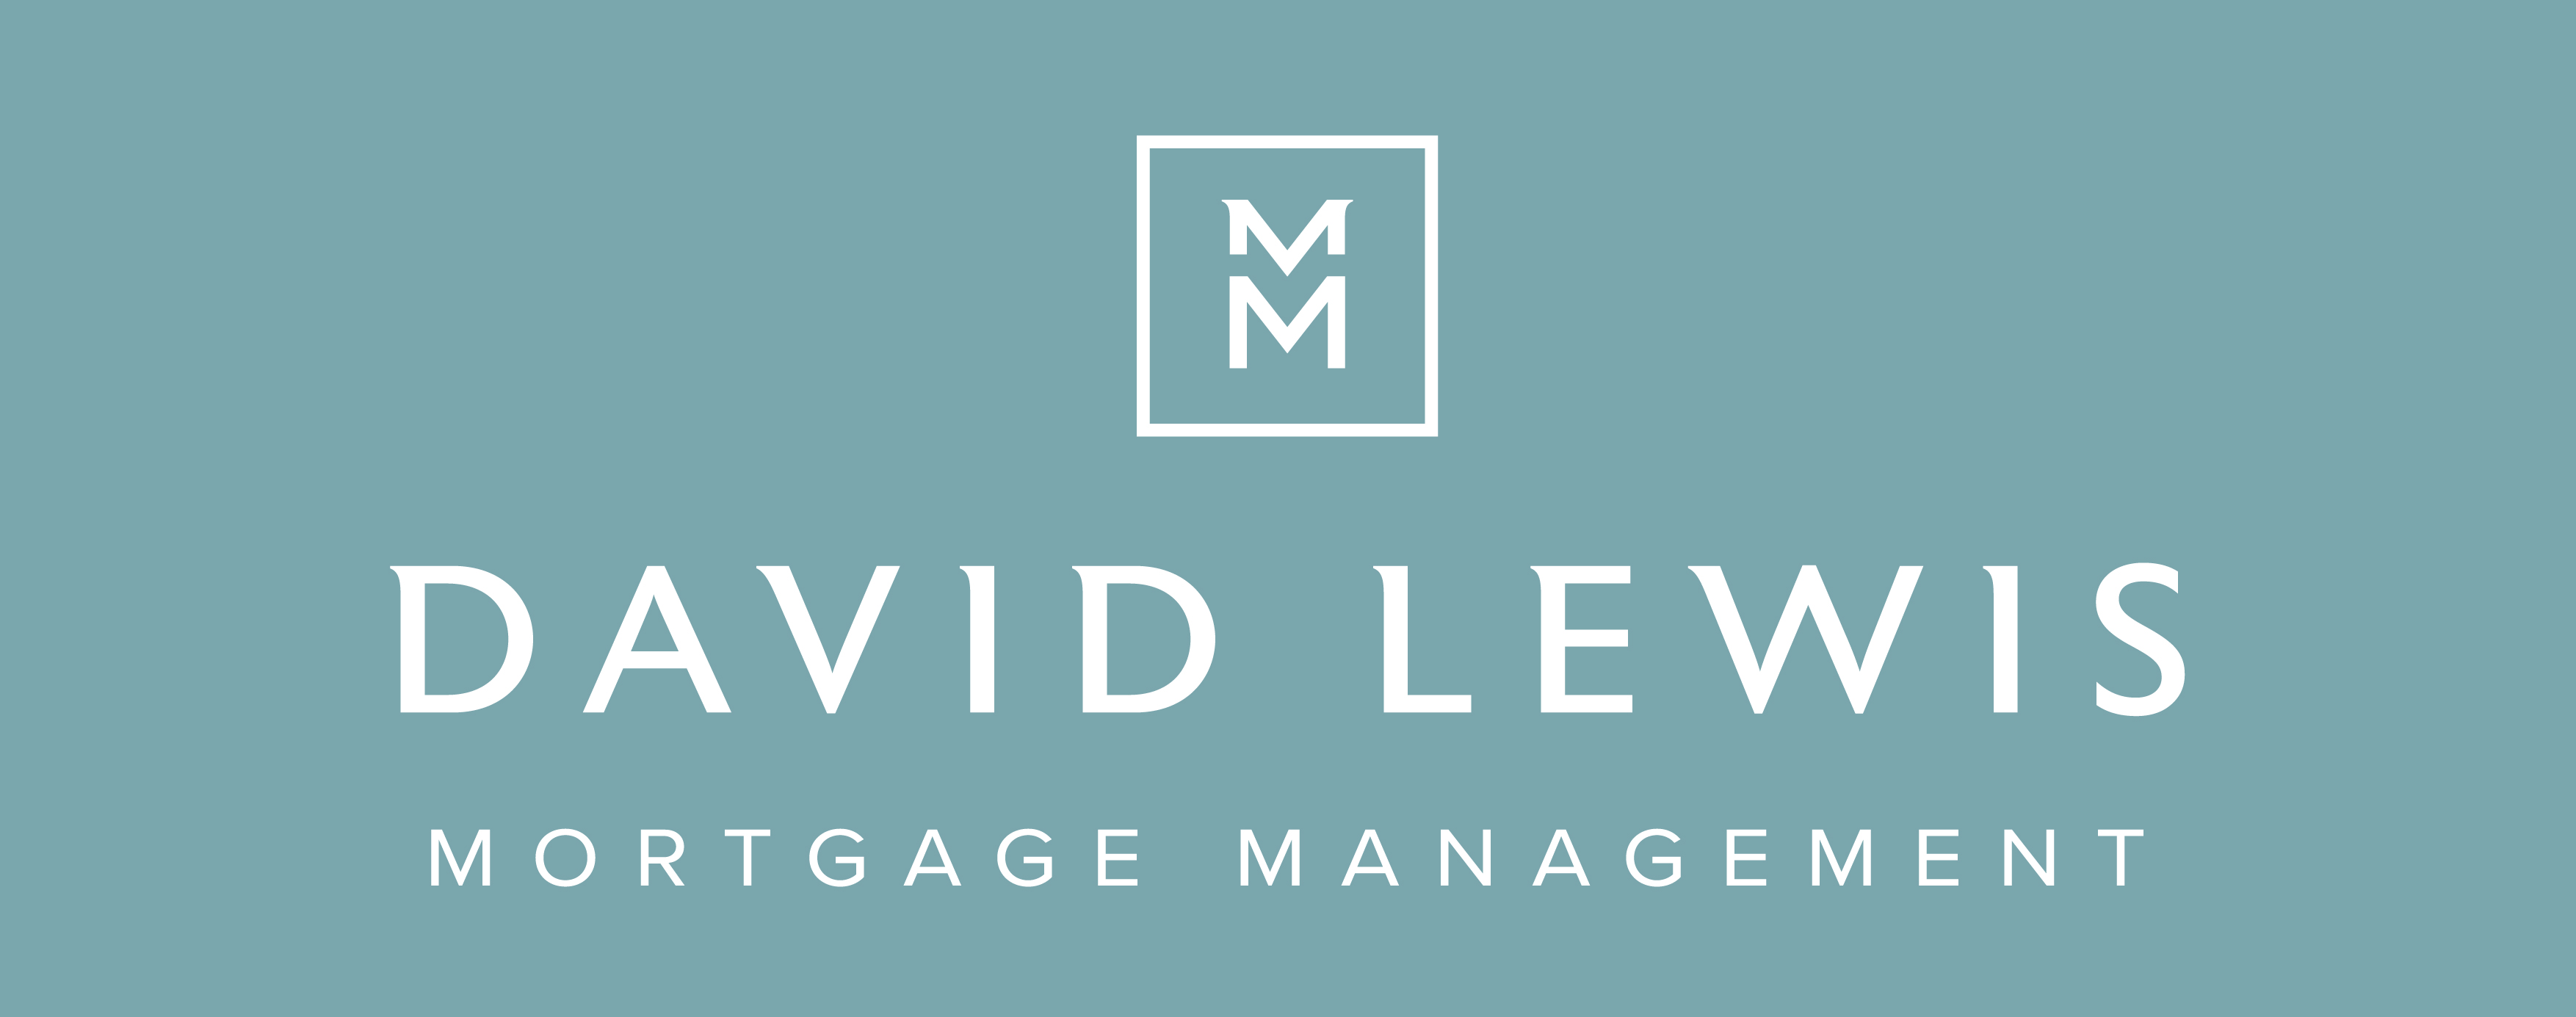 David Lewis Mortgage Management